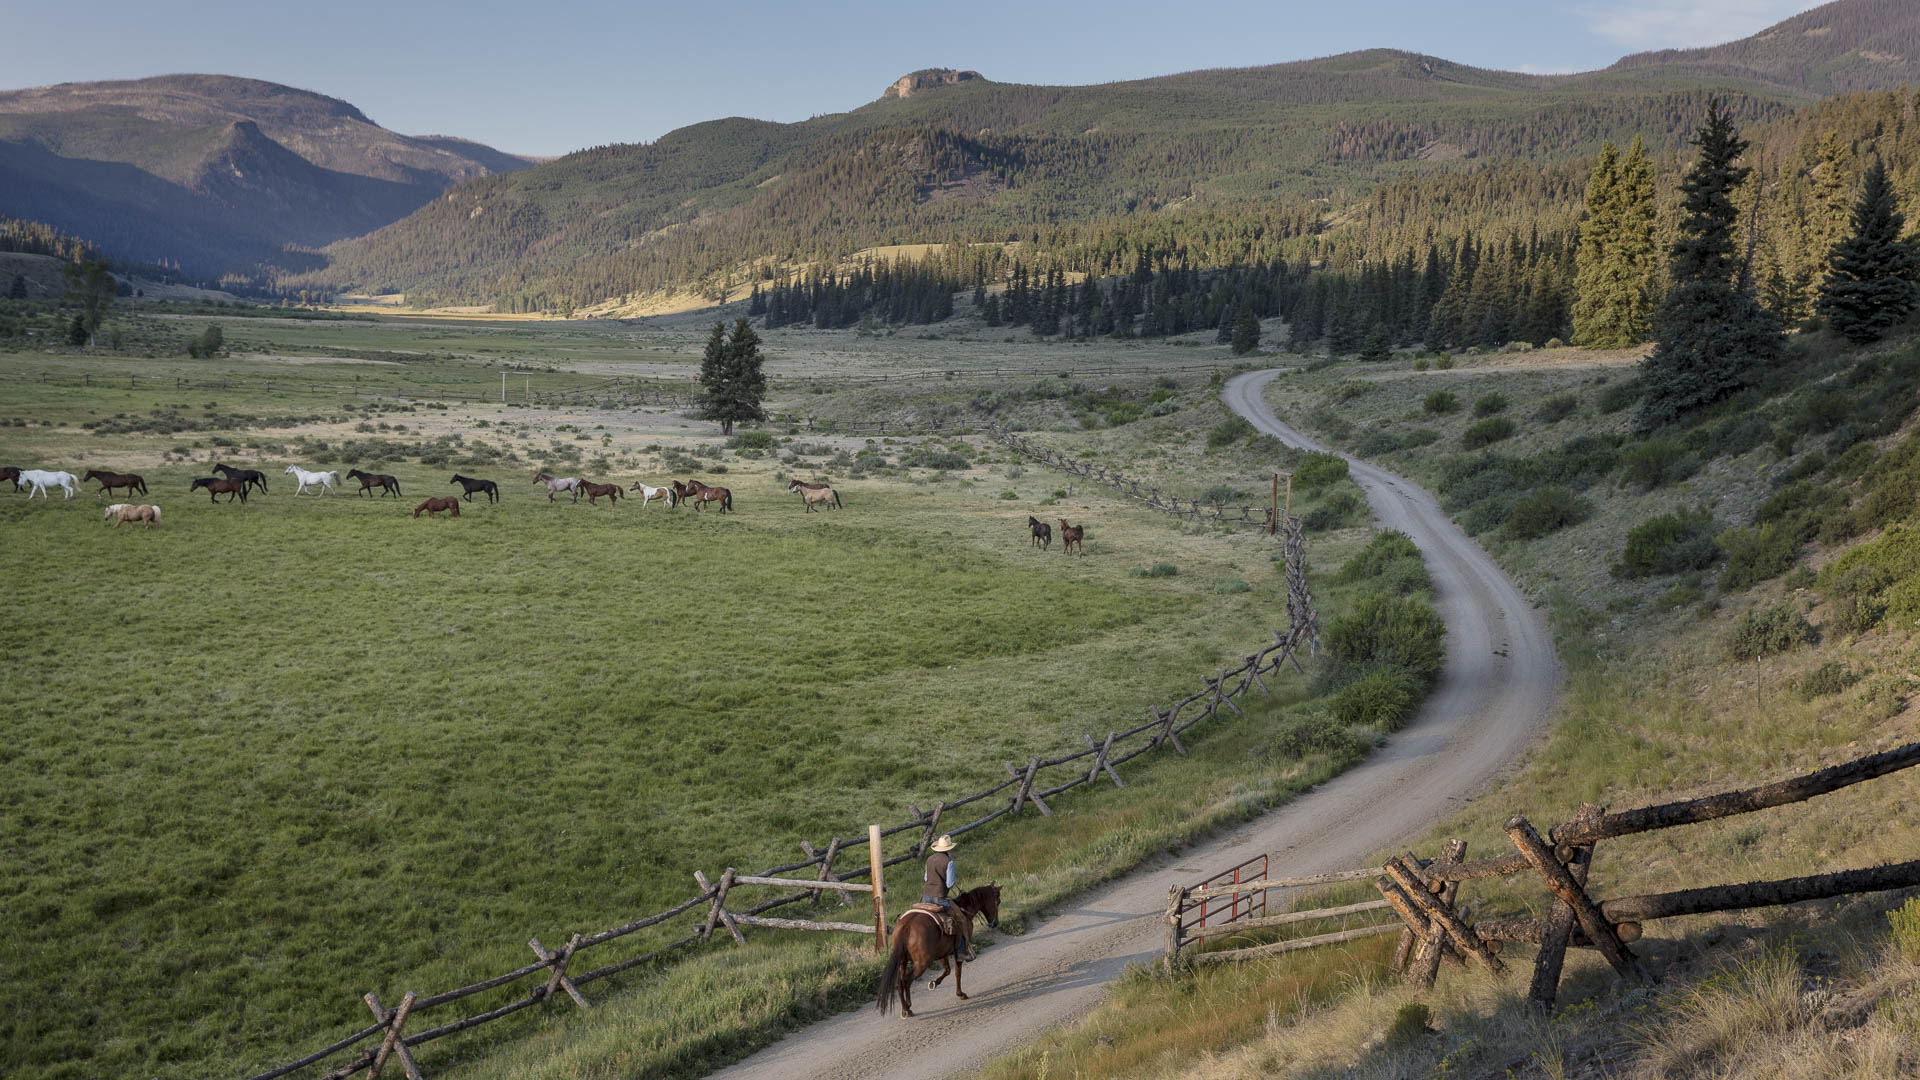 Horseback riding at 4UR Ranch in Creede, Colorado